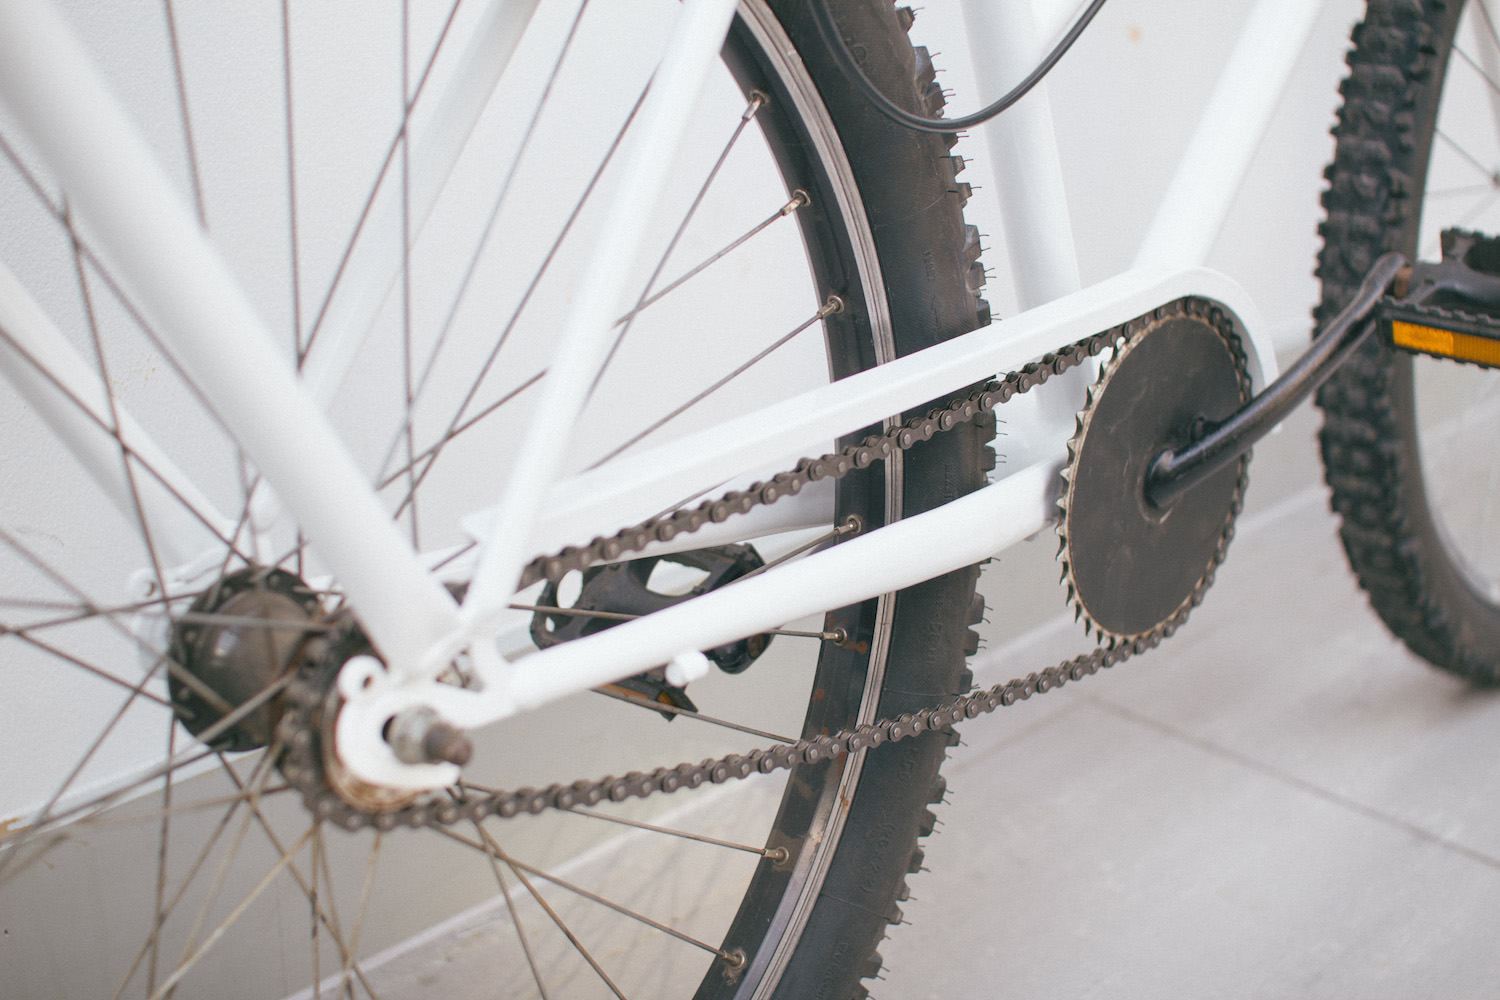 Integrated chain guard